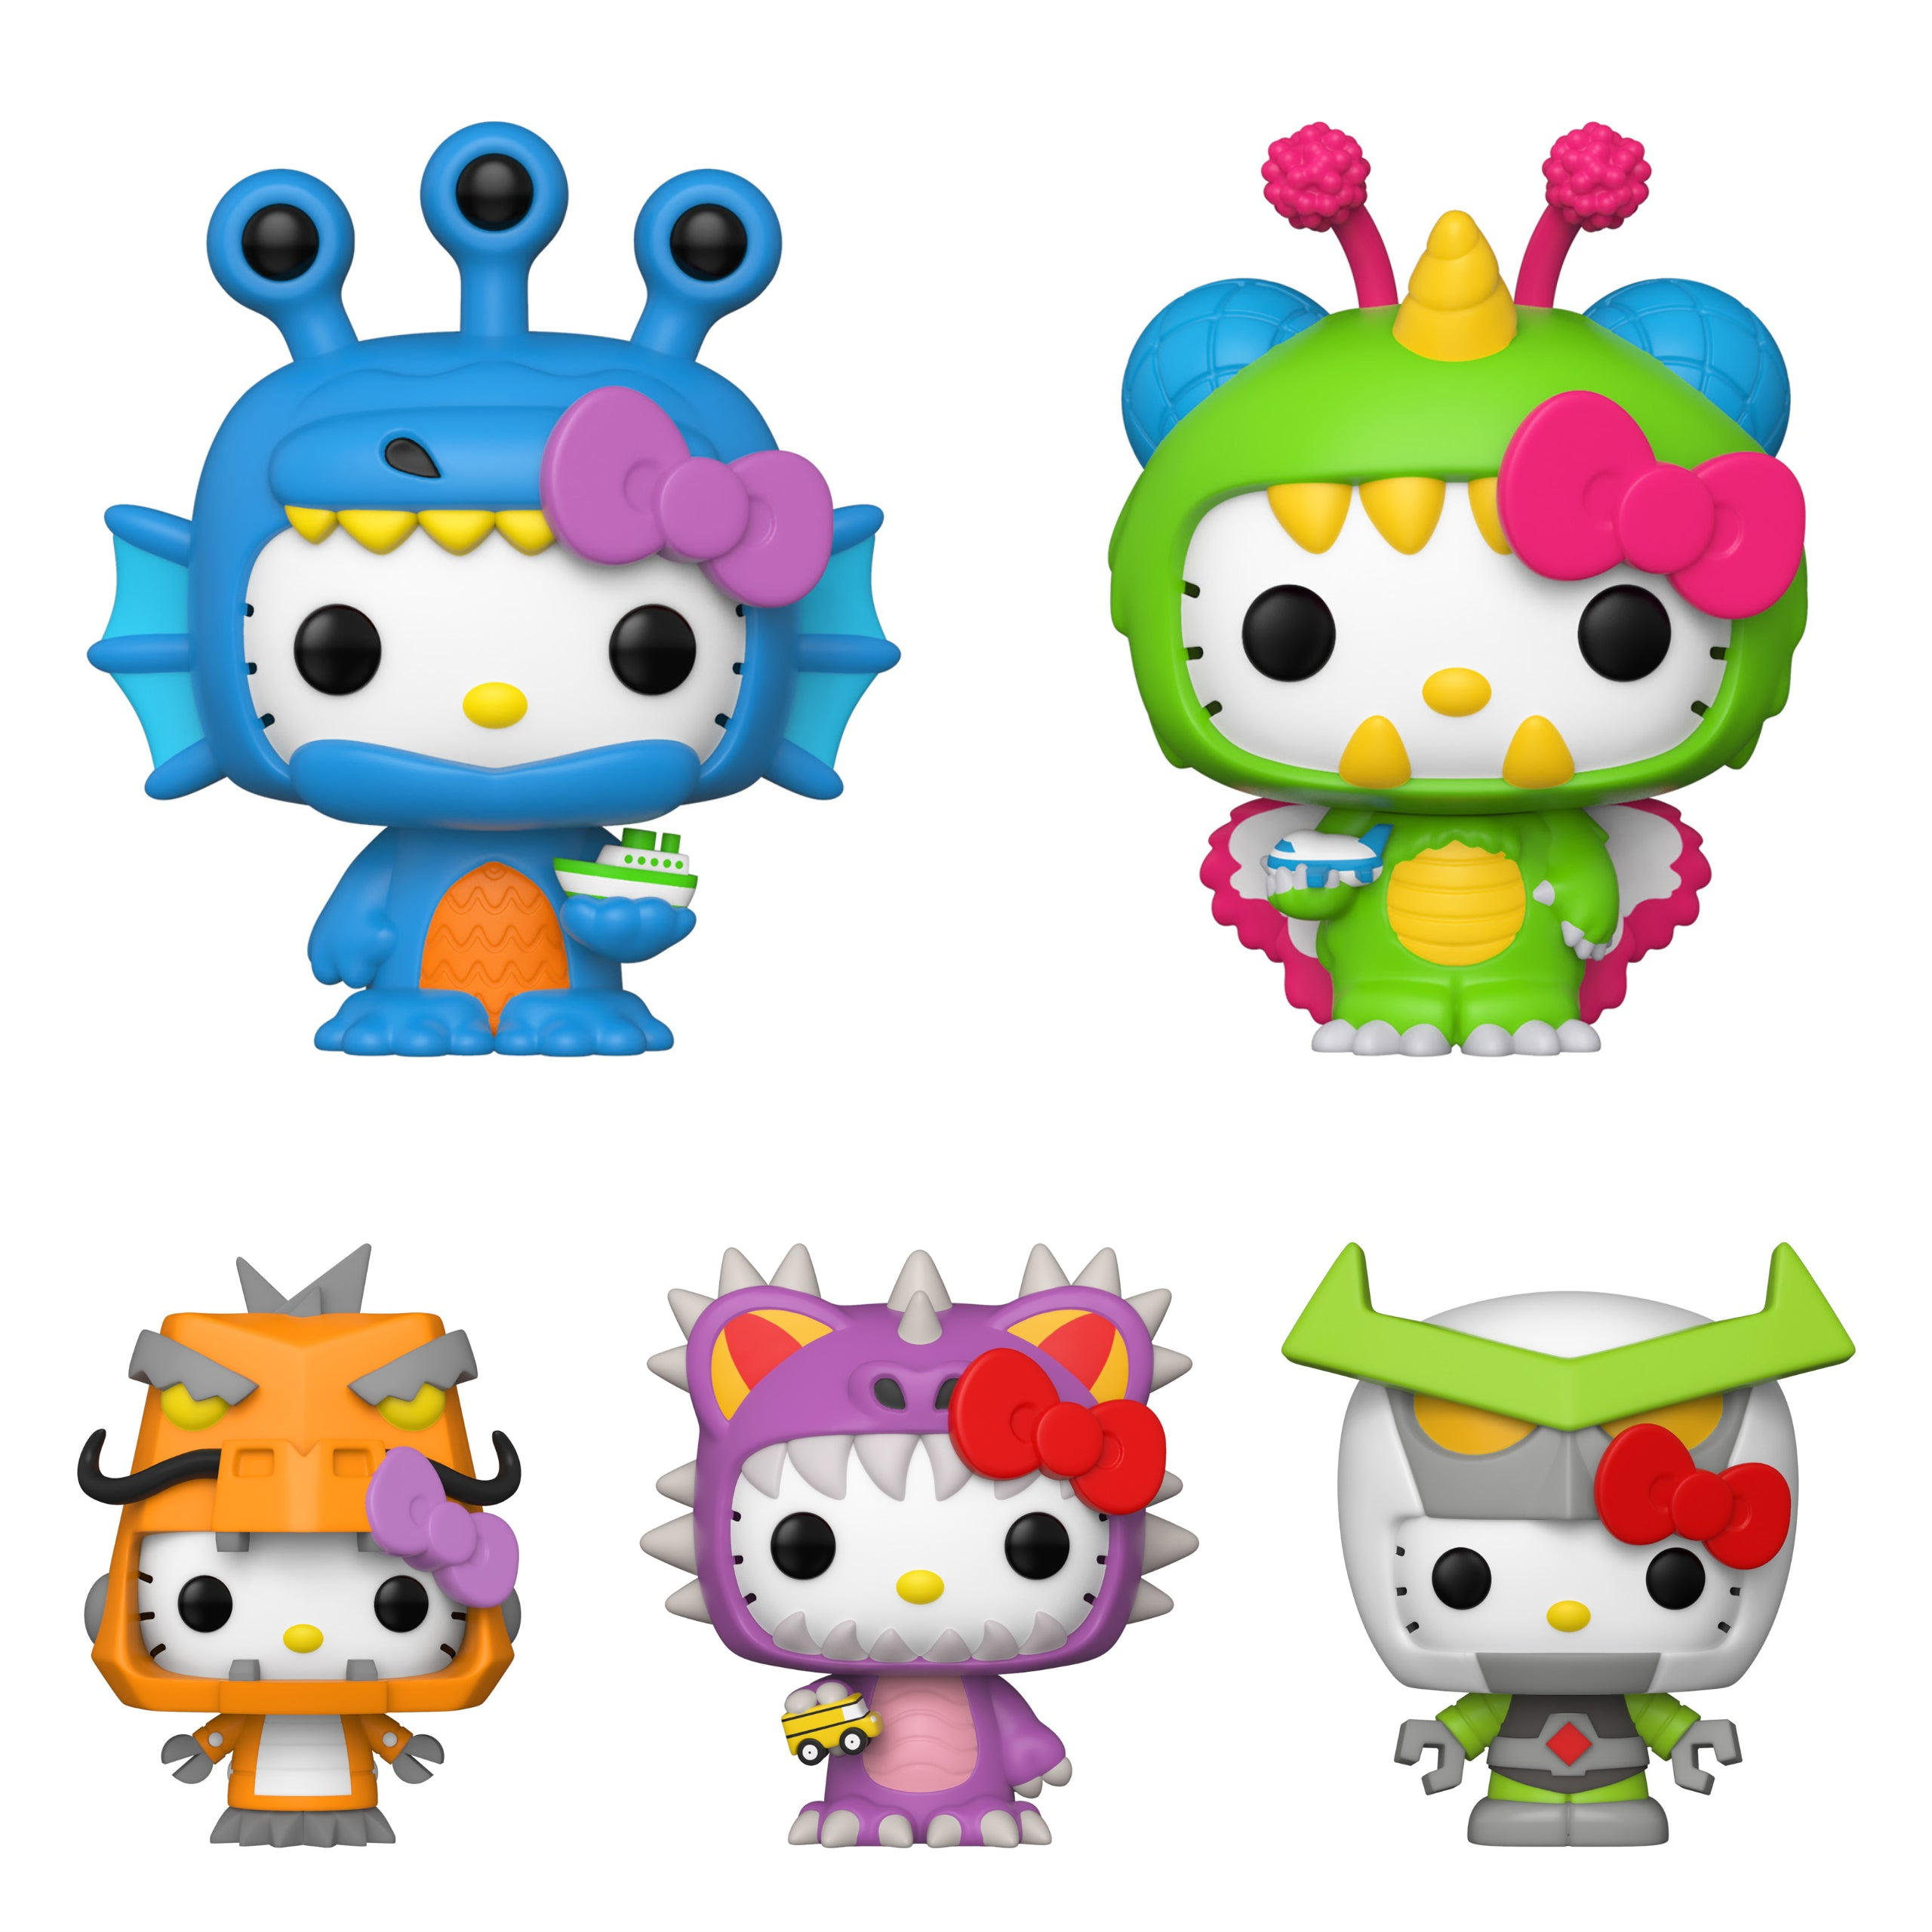 Sanrio Hello Kitty x Kaiju Bundle [5 Figures] (Preorder)